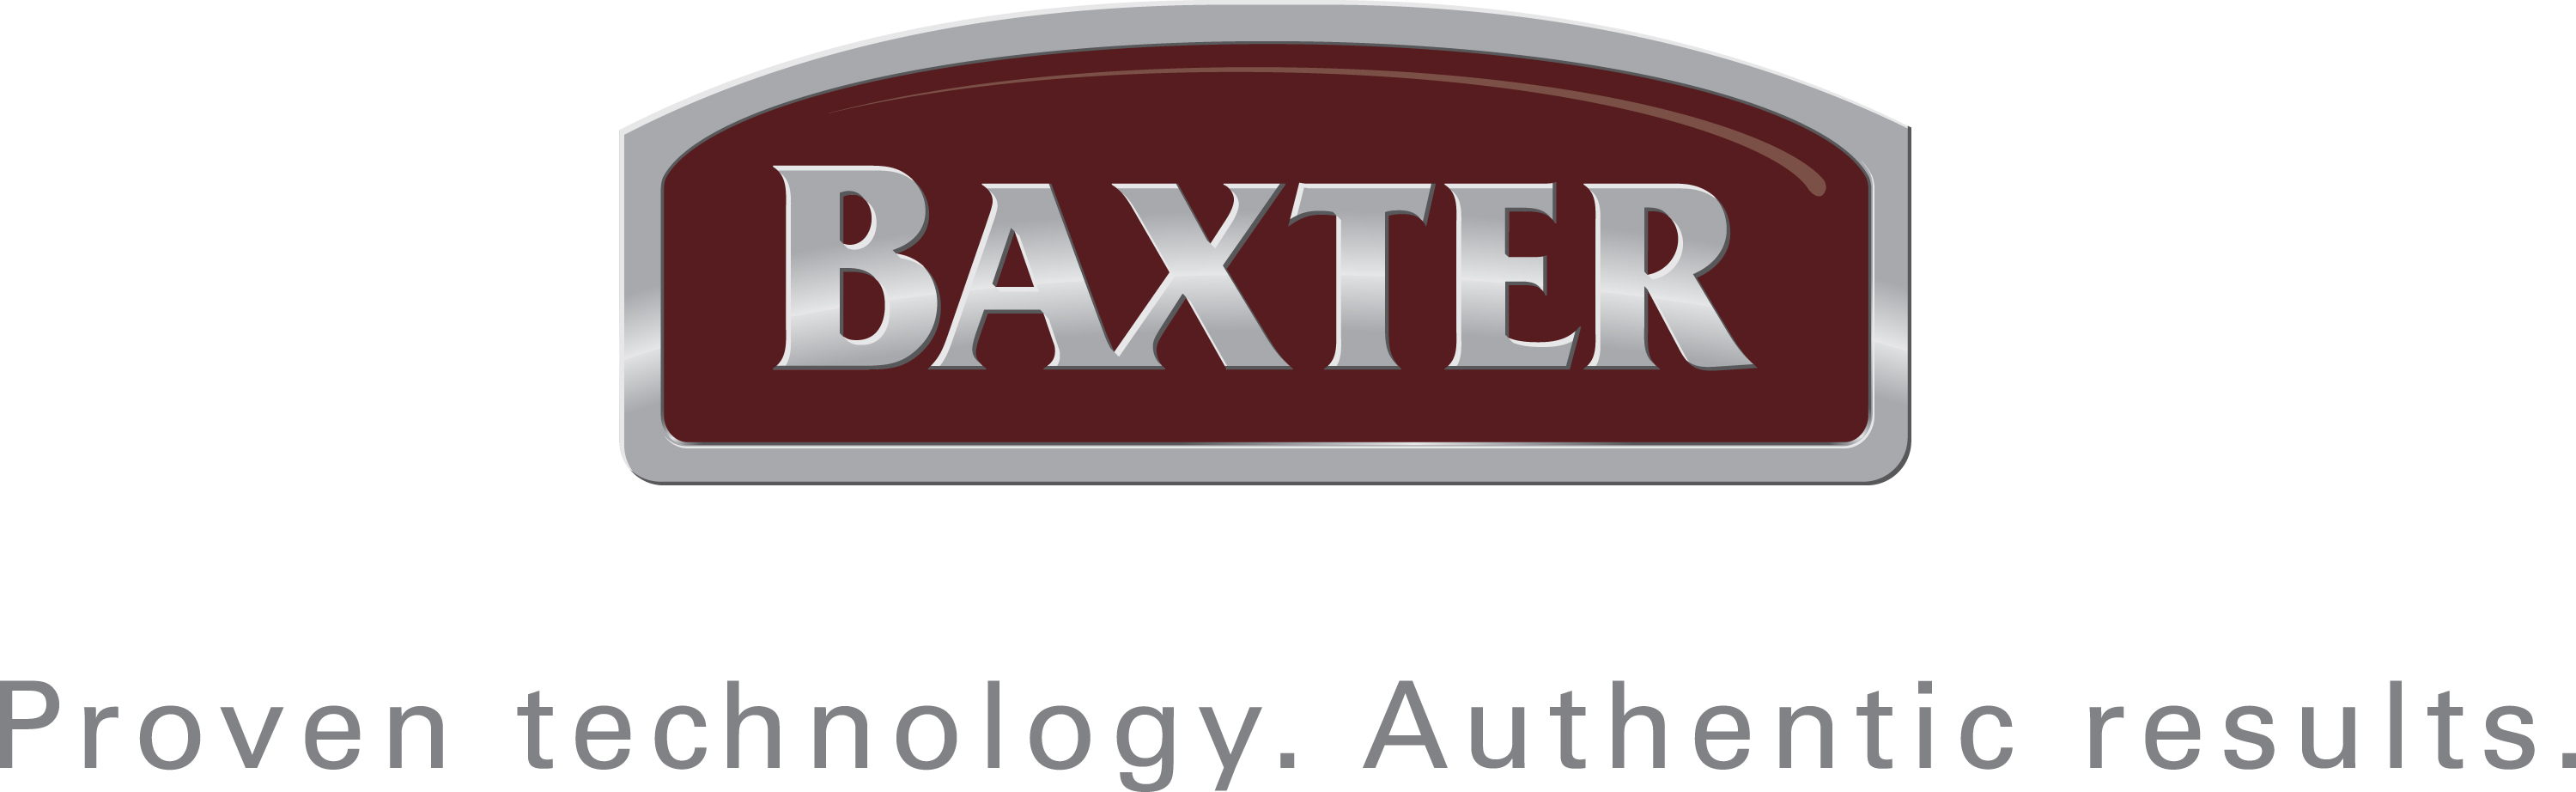 Commercial Ovens & Bakery Equipment | Baxter